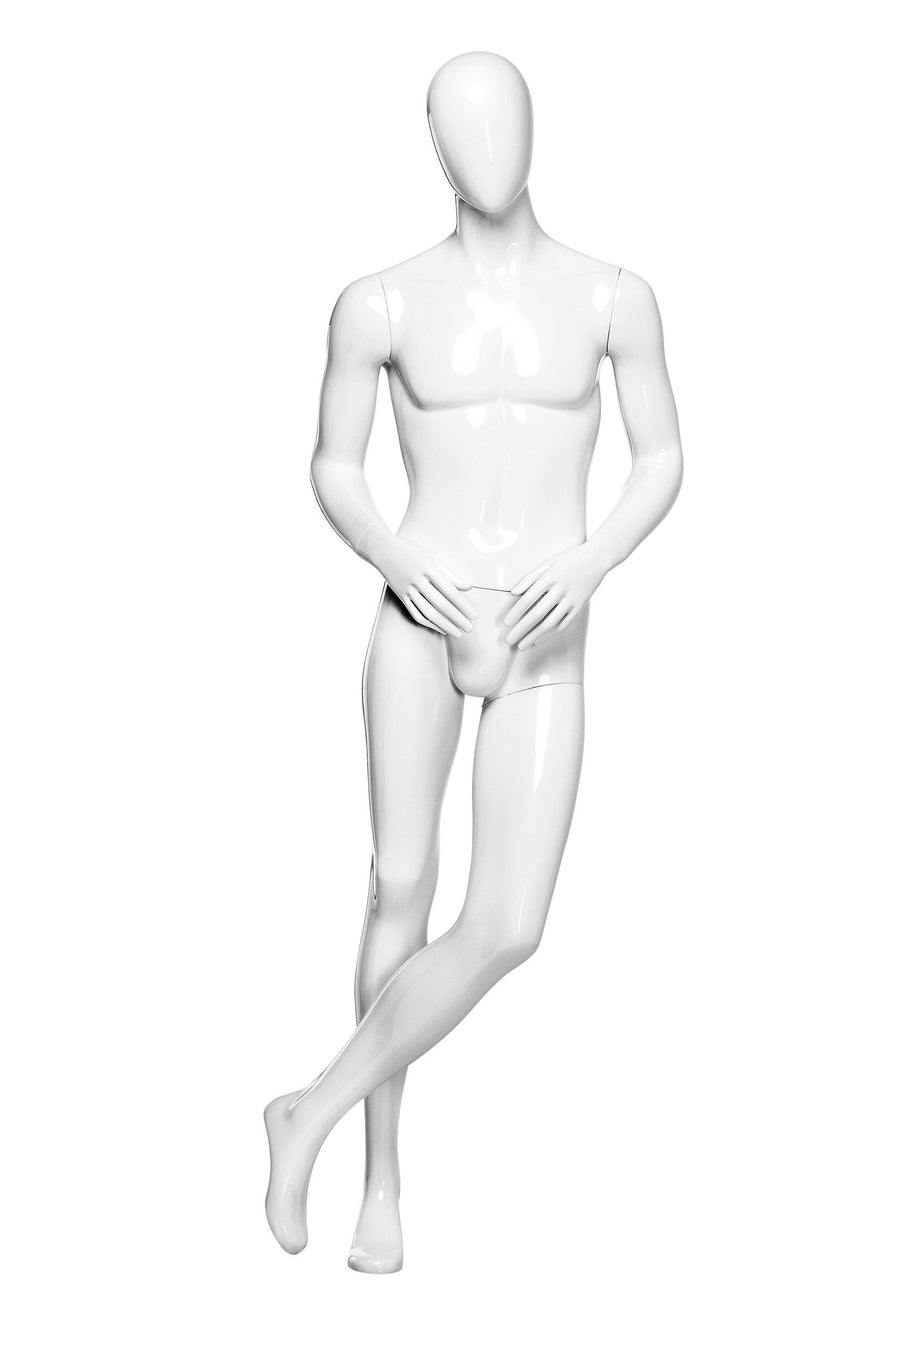 pure white male mannequin leaning to the left with smooth face, arms slightly bent, and left leg crossed over right leg